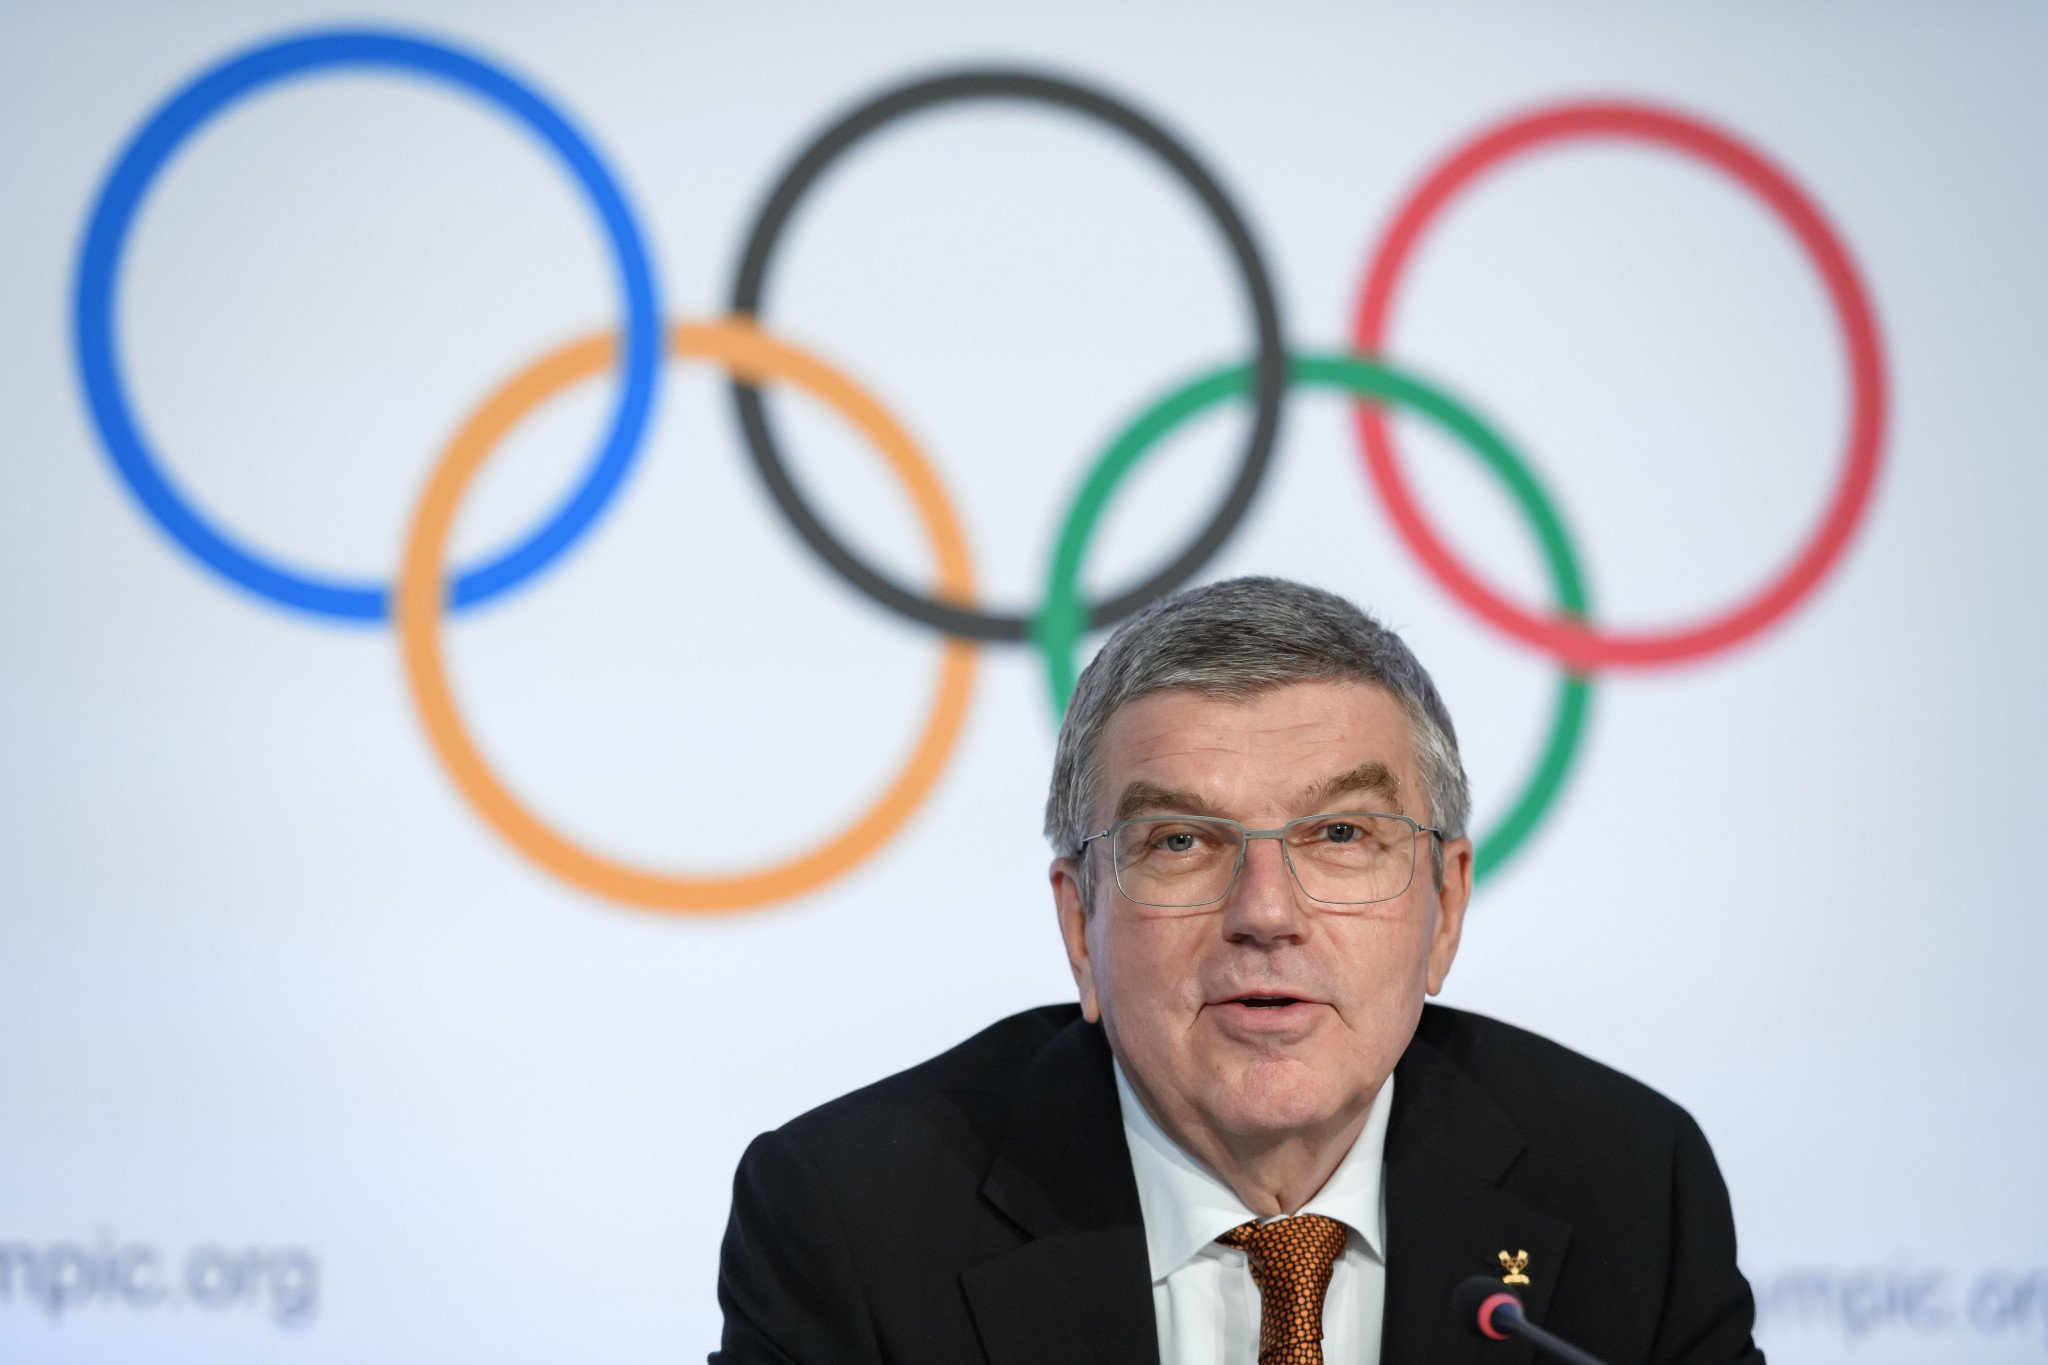 IOC President Thomas Bach has paid tribute to Günther Heinze ©Getty Images